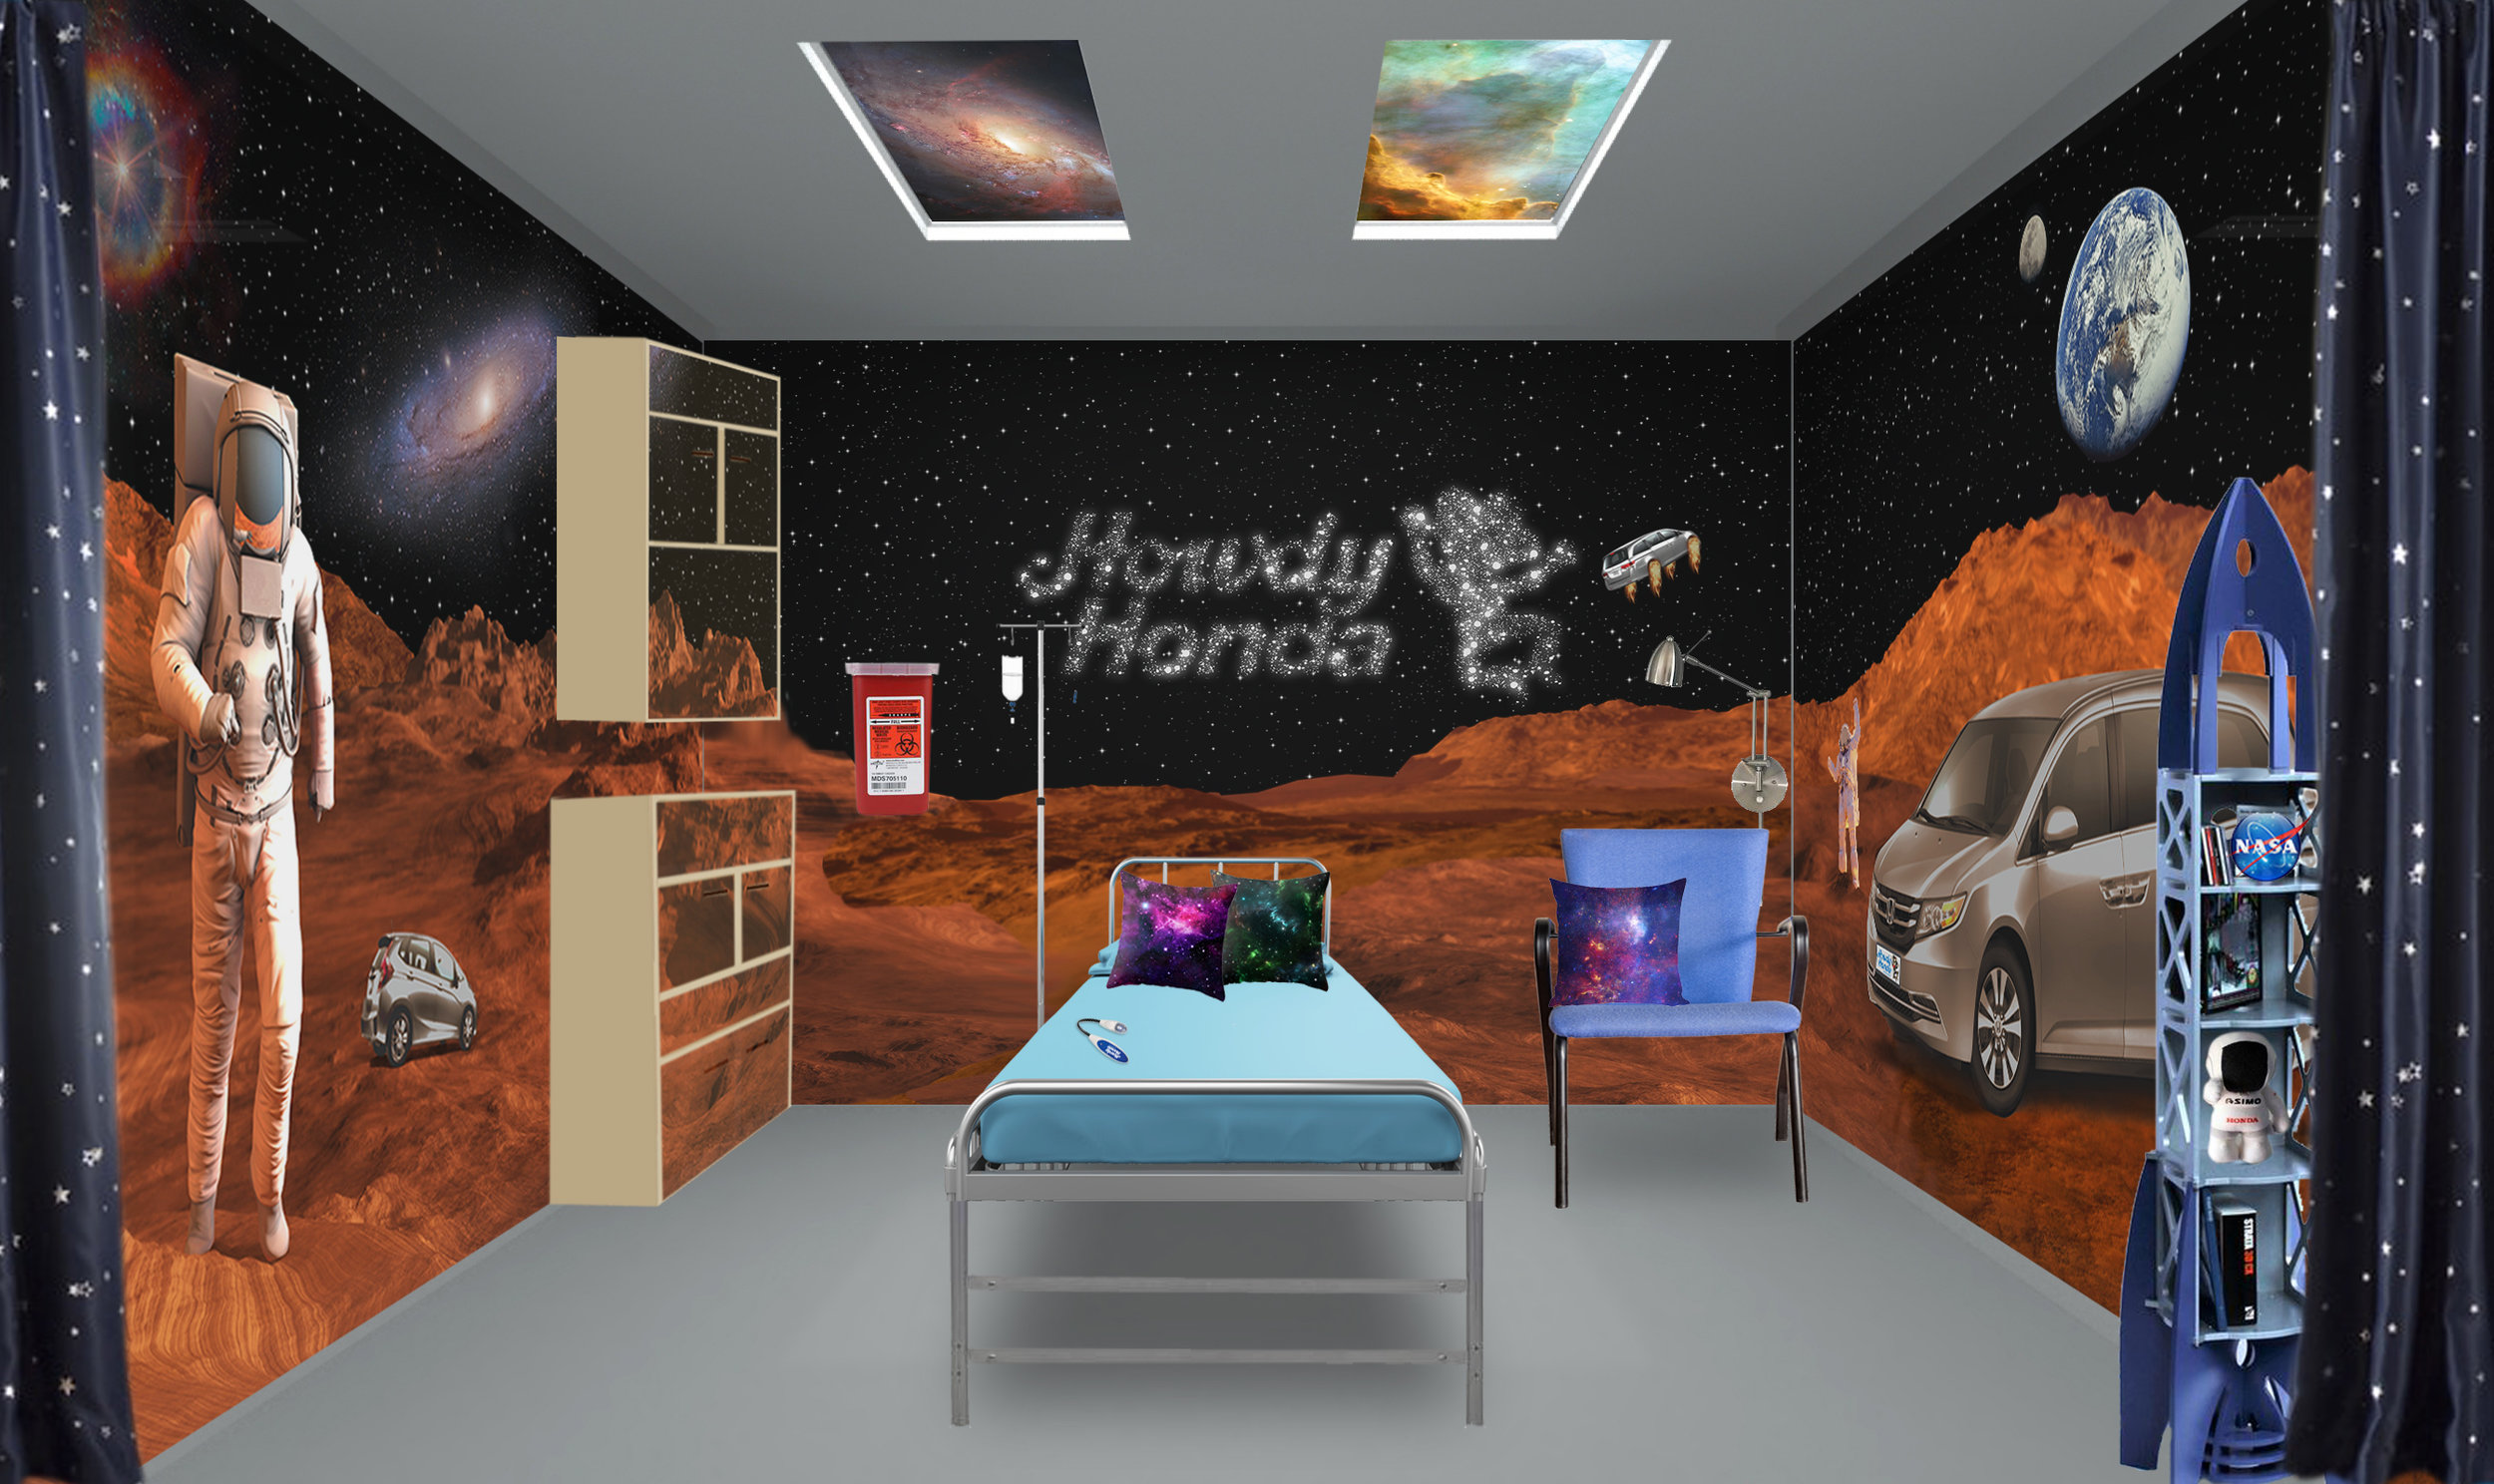 crash_room_mockup_OPTION3.jpg